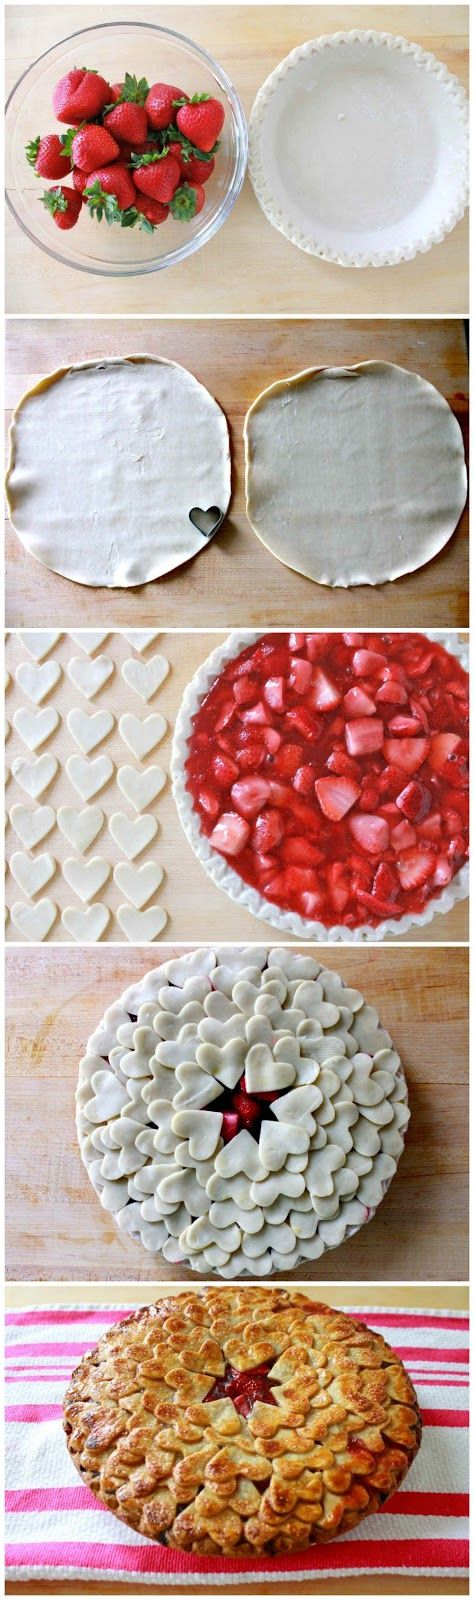 Totally making this for a valentines day party next year ..